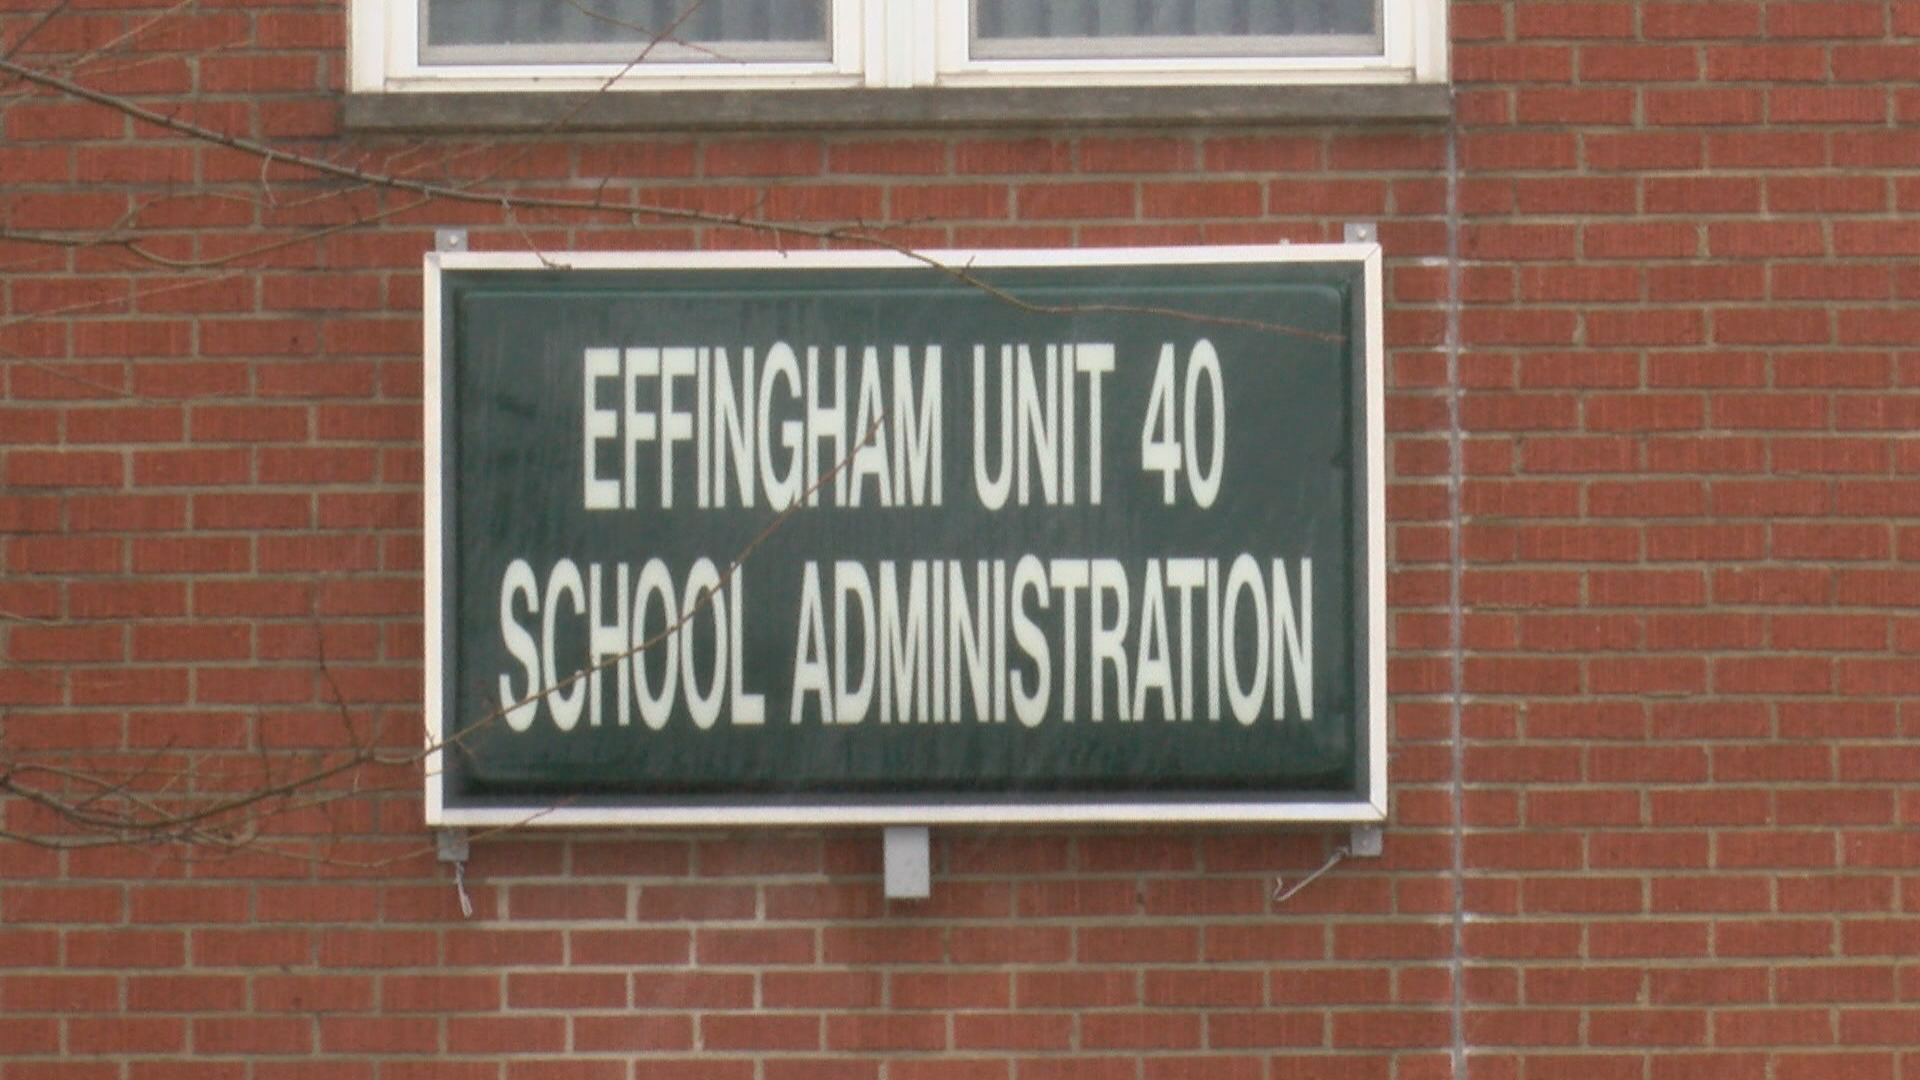 effingham school teachers_1528837965434.jpg.jpg